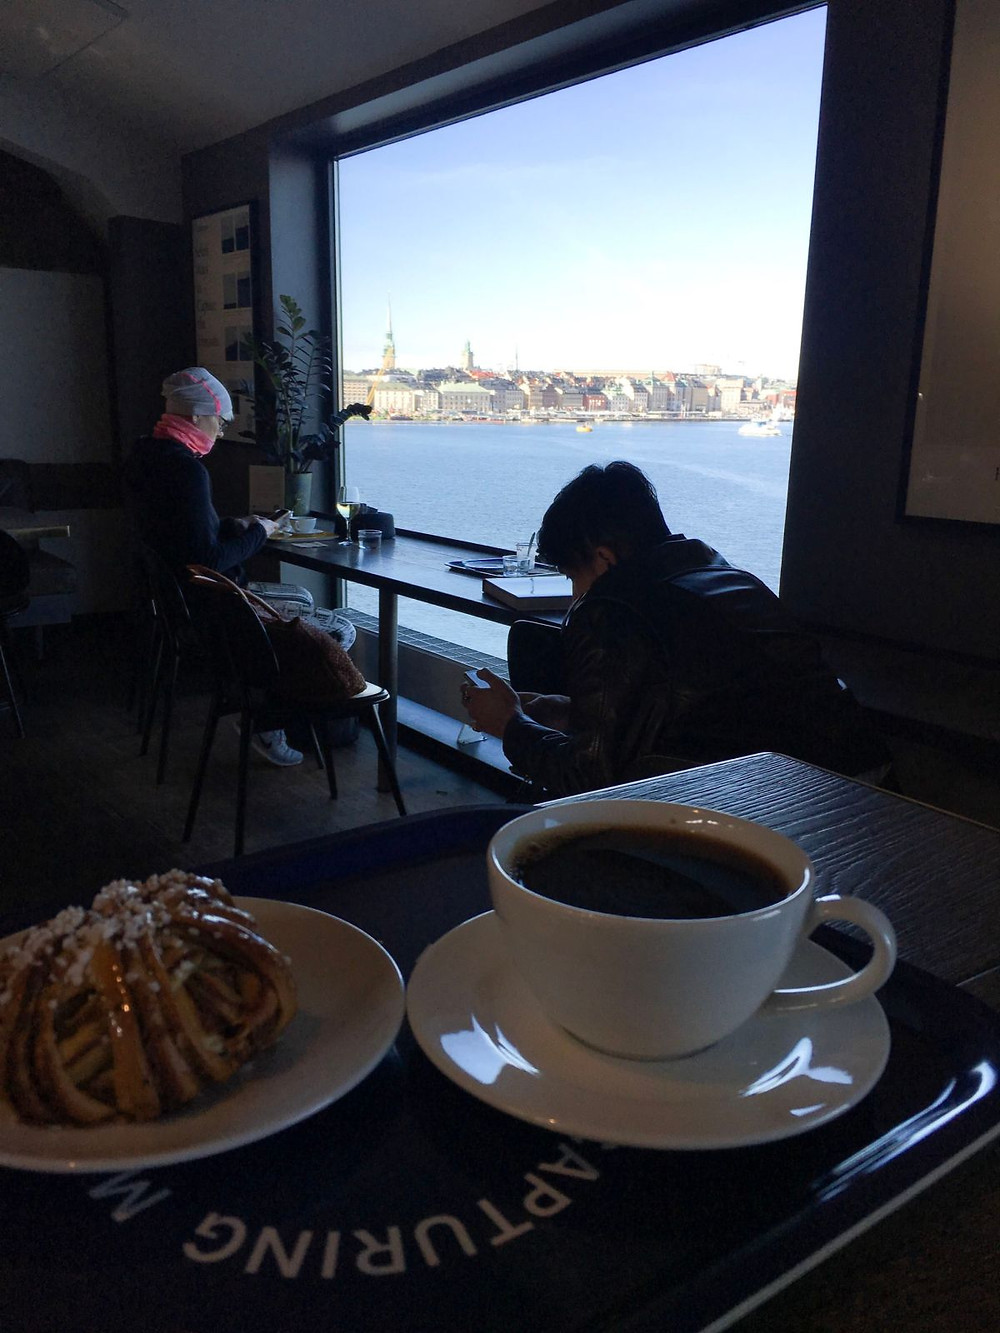 Cup of coffee and cinnamon pastry on a table overlooking the Stockholm archipelago